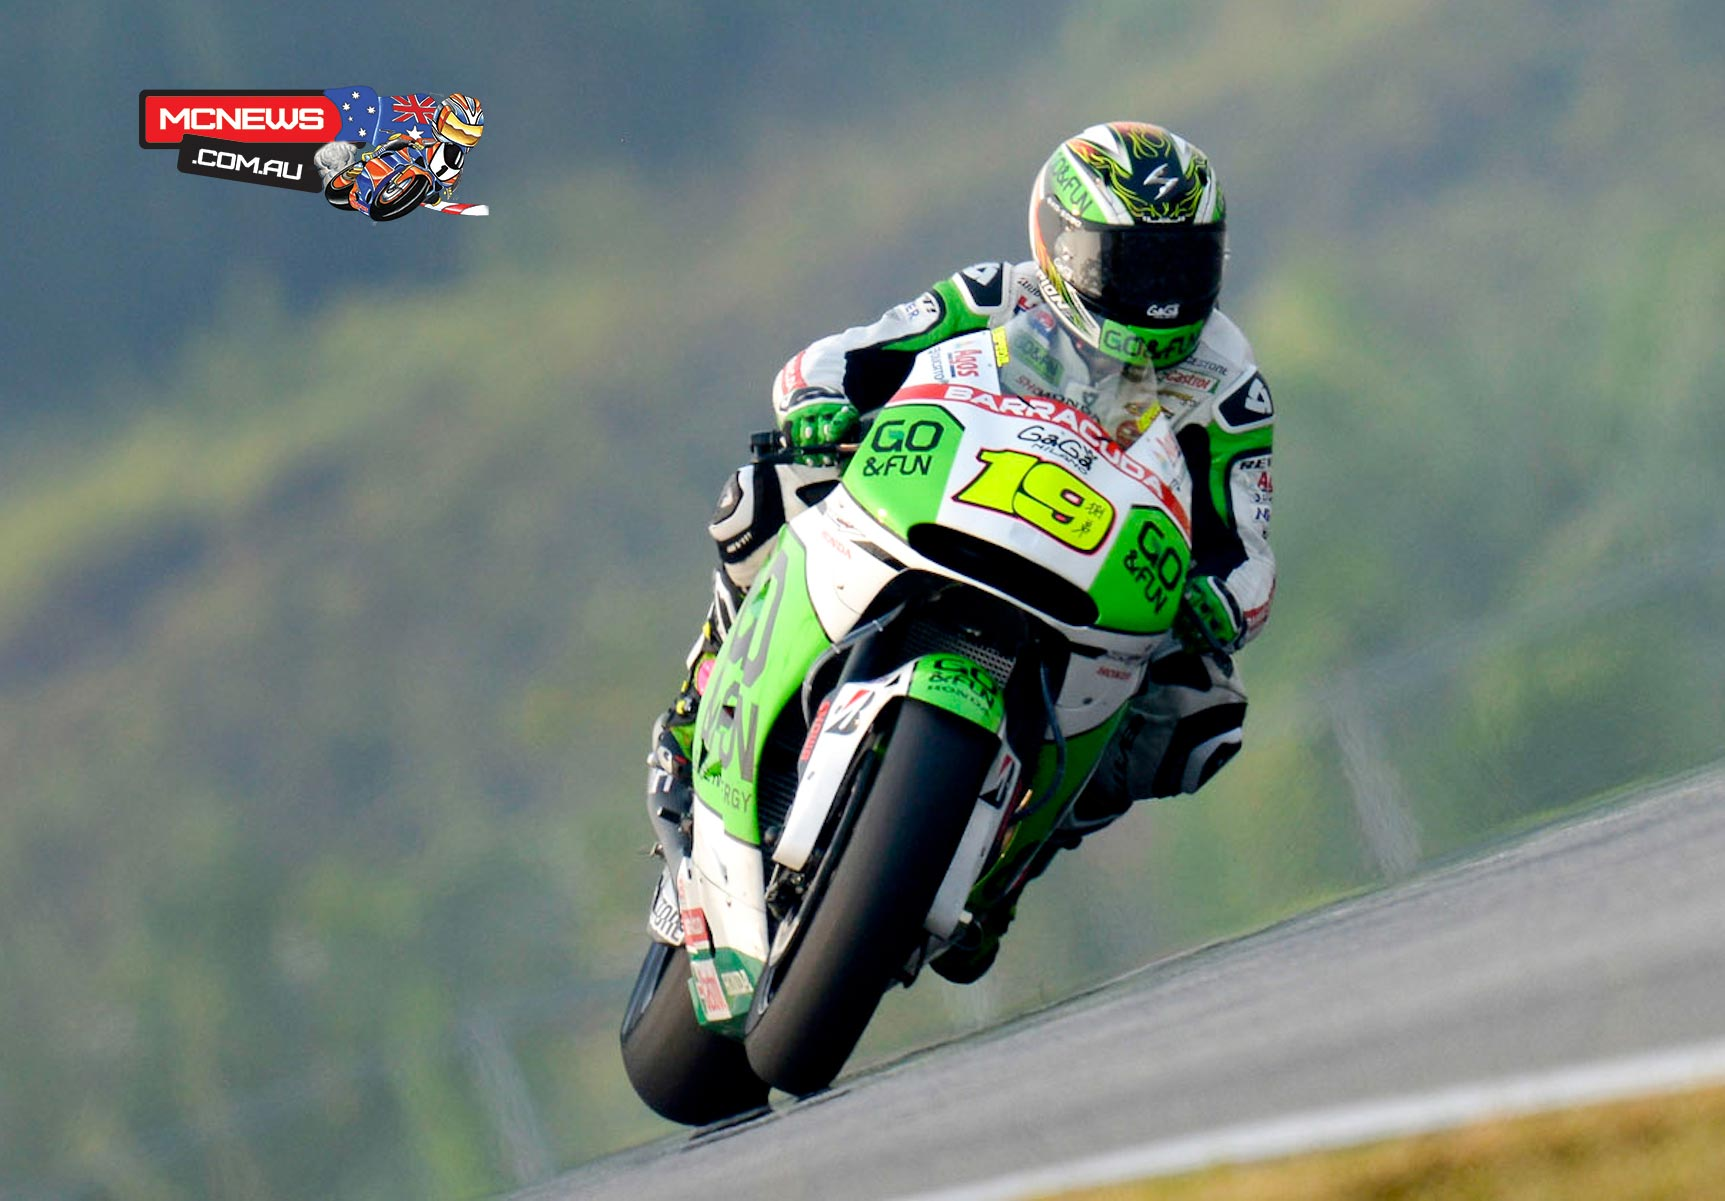 "Alvaro Bautista (GO&FUN Honda Gresini): 1st, 2m 00.848s - ""It's been a very positive first day of testing! We worked very well on the rear end, an area that earlier this month gave us some problems. We have had excellent results thanks to Showa developing a new shock absorber, somewhat different compared to the one we've used so far, which is very suitable for our needs. In addition to the good lap times, even though the track was worse than the first test, I am especially pleased because my feeling with the new Bridgestone tyres has improved so much that now I feel comfortable when riding. We are on the right path: tomorrow morning we will continue to work hard, focusing also on the front end, while in the afternoon if we get the chance we would like to try a first long run."""